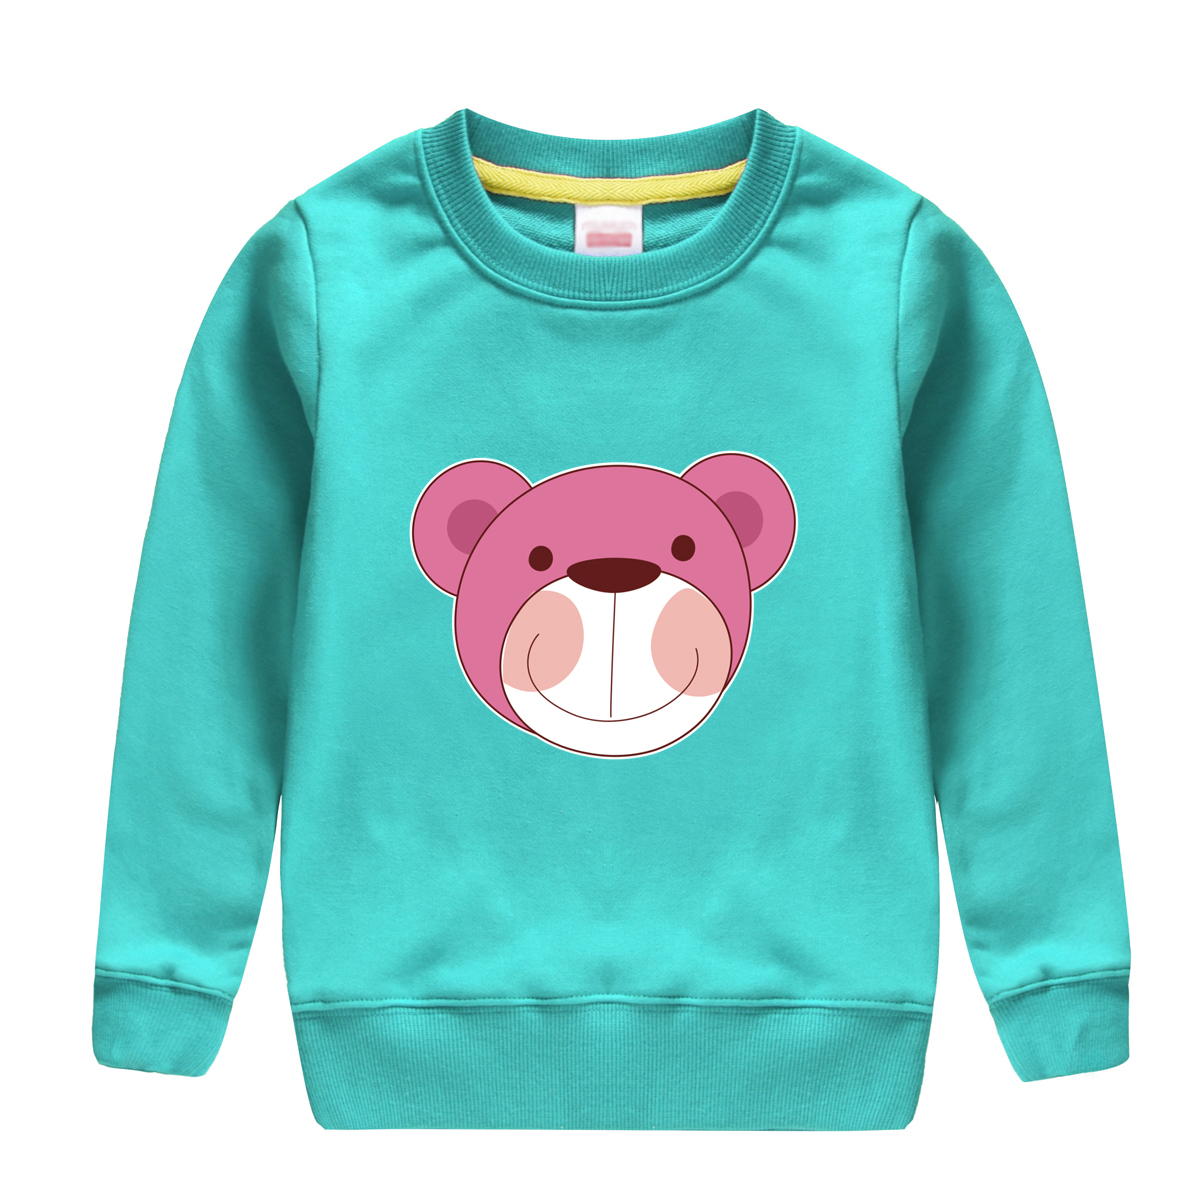 baby boys childen clothing 2018 new brand clothes long sleeve tops bear pattern printed kids sweatshirts design for children